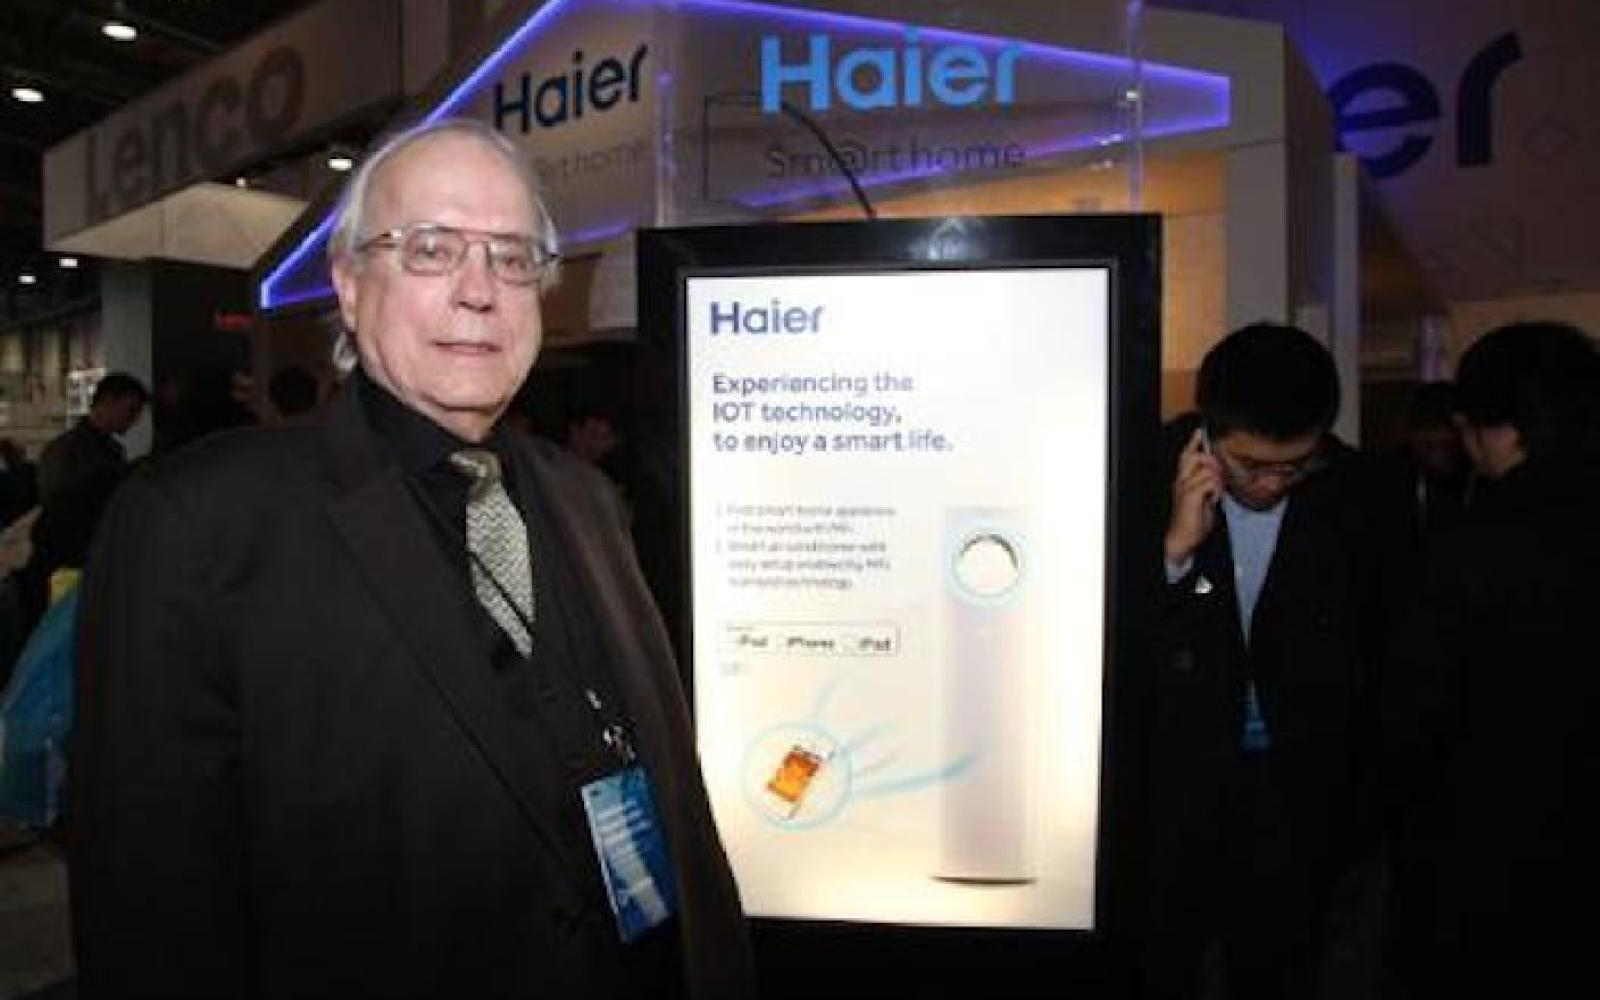 CES 2014: Haier announces first smart appliance with Apple's MFi certification